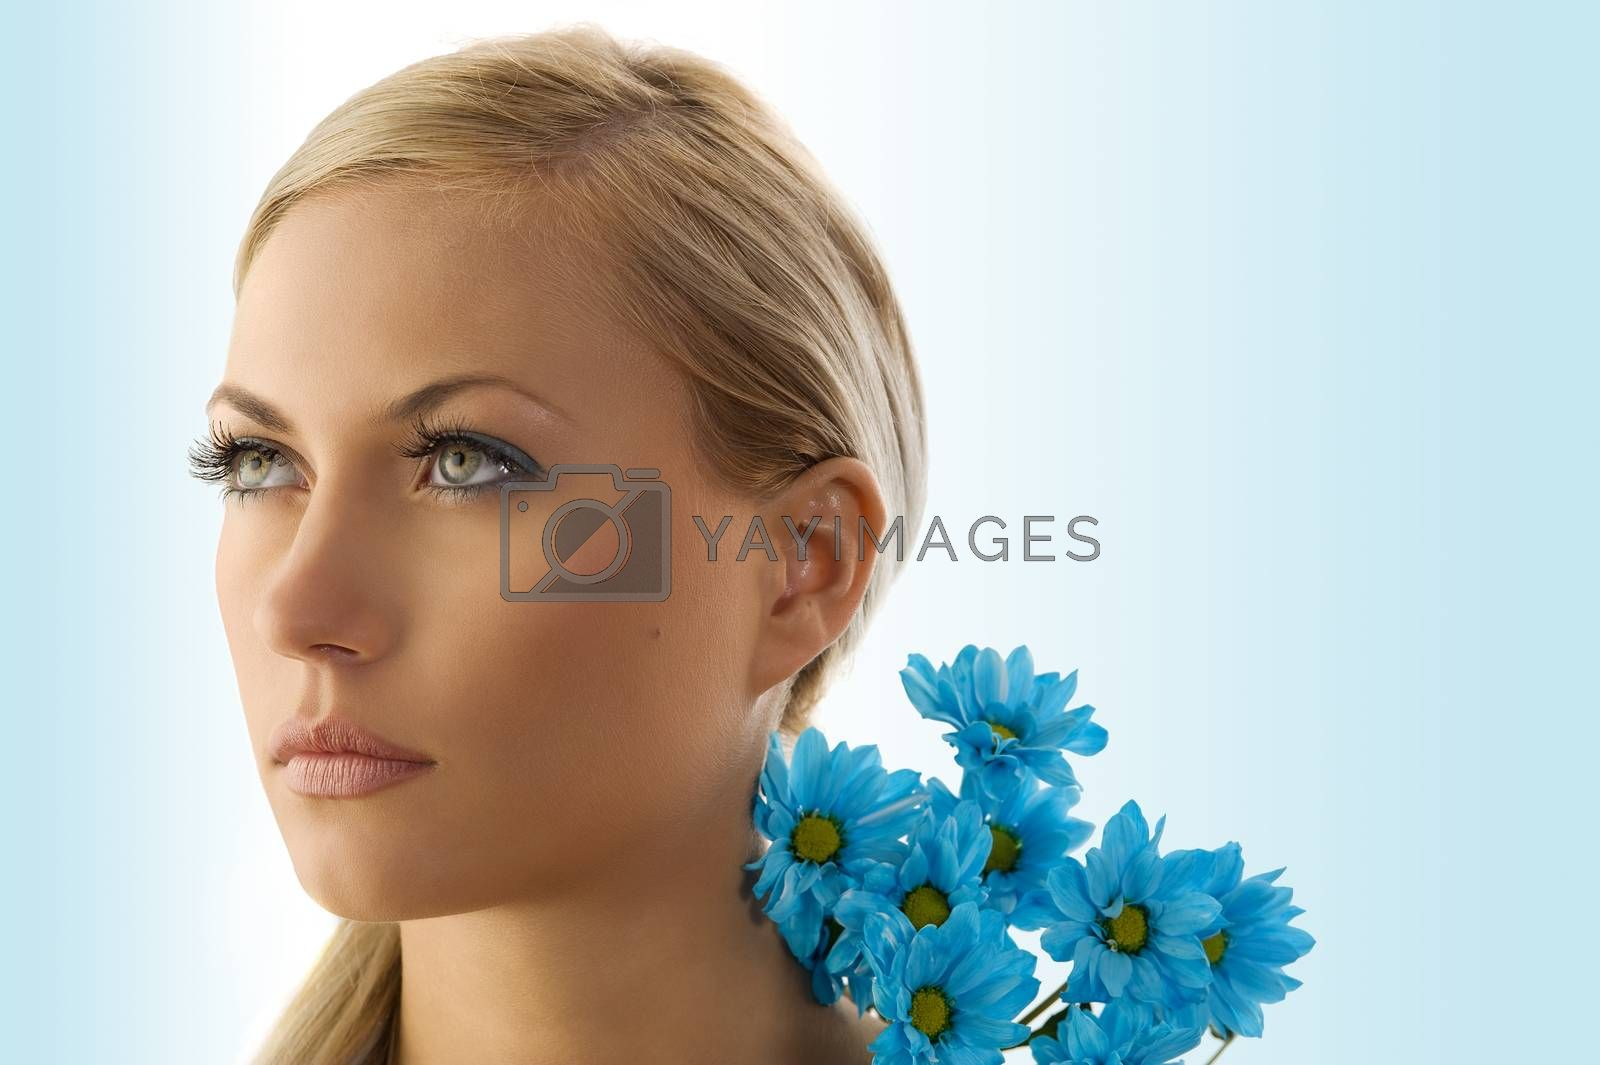 Royalty free image of blond girl with blue daisy by fotoCD